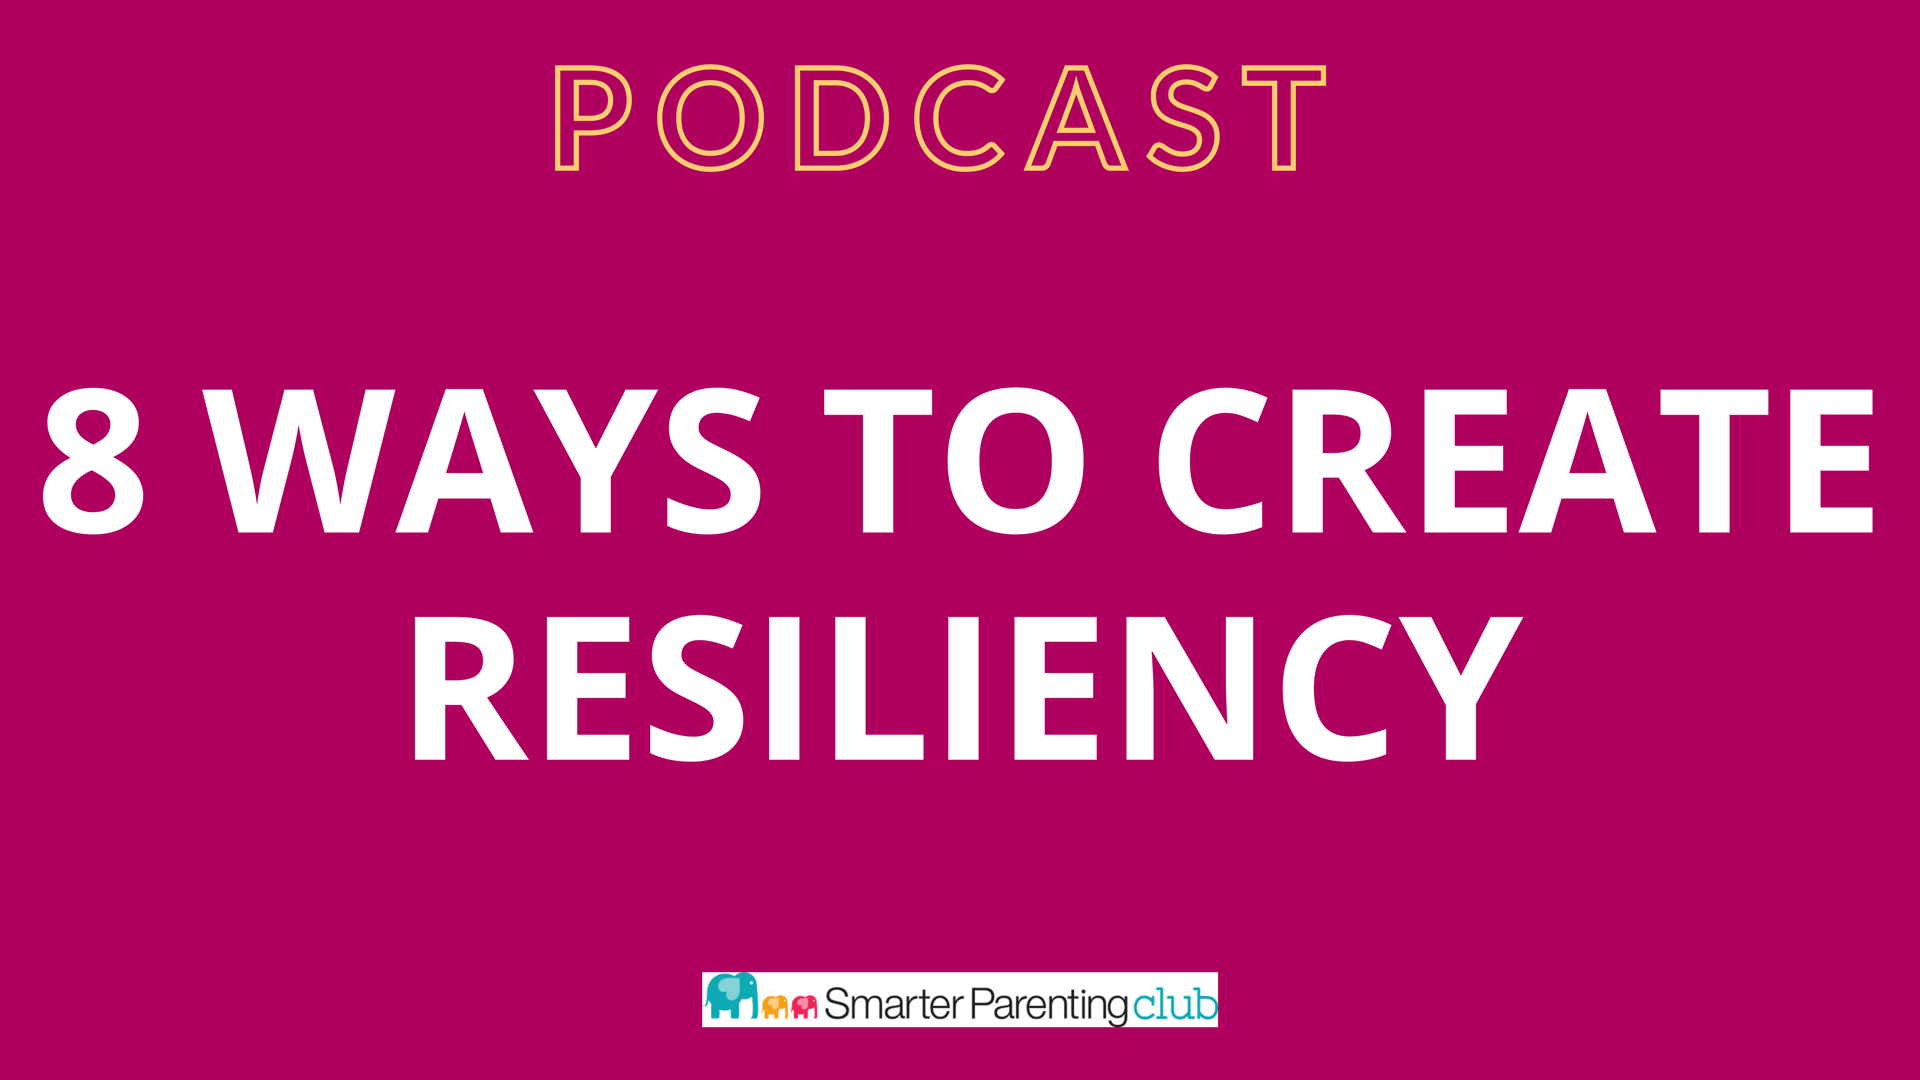 Eight ways to create resiliency